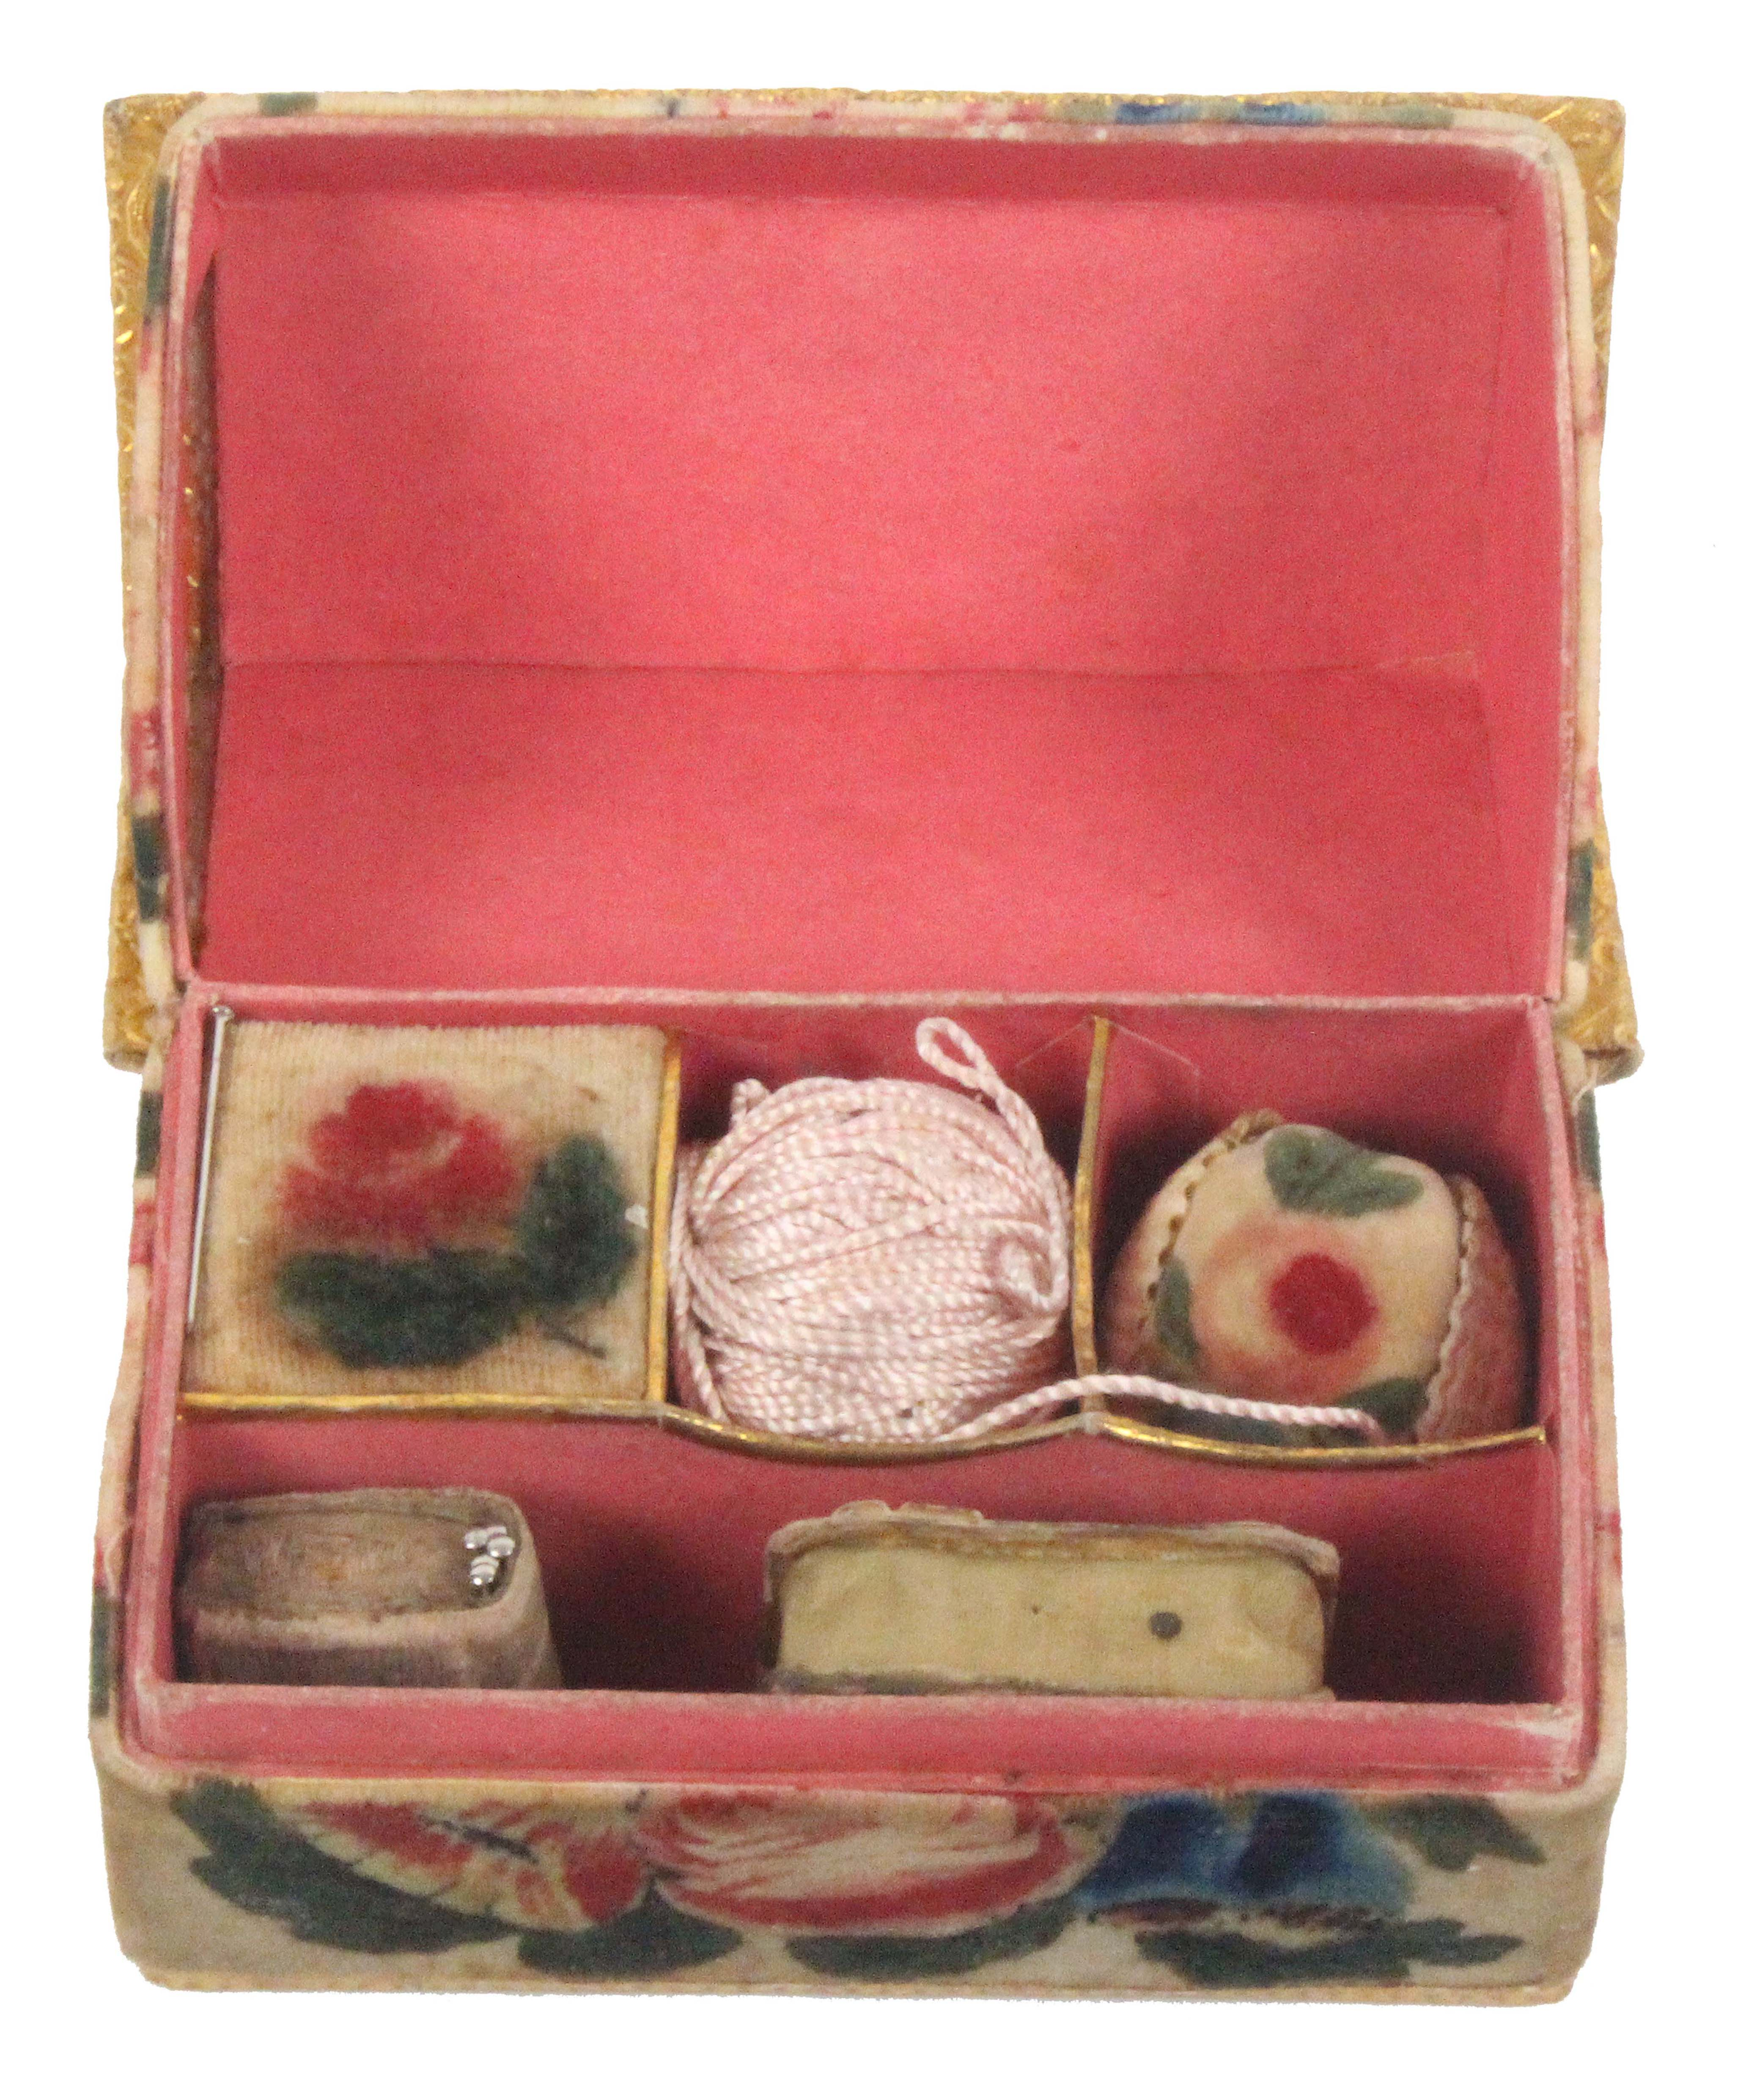 A rare Regency gilt foil and velvet painted child's sewing box in the form of a house, the front and - Image 2 of 2